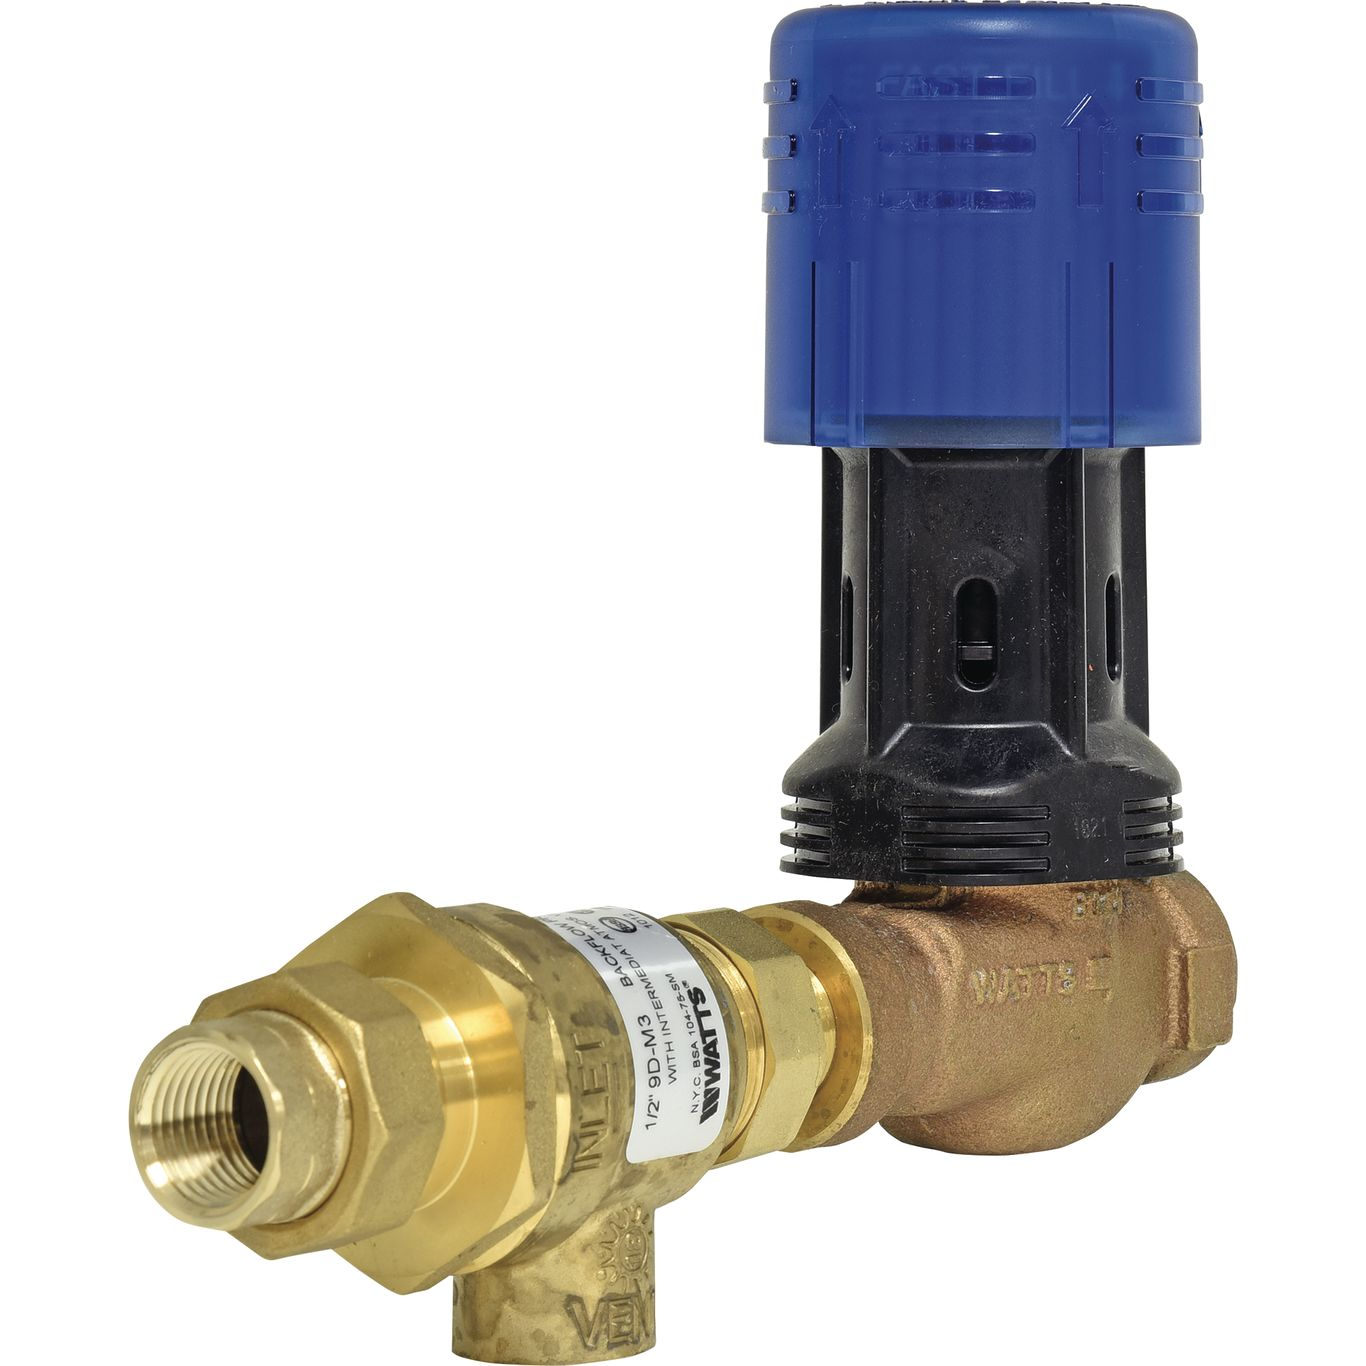 1/2inch BD911T WATTS COMBINATION WATER FEEDER AND